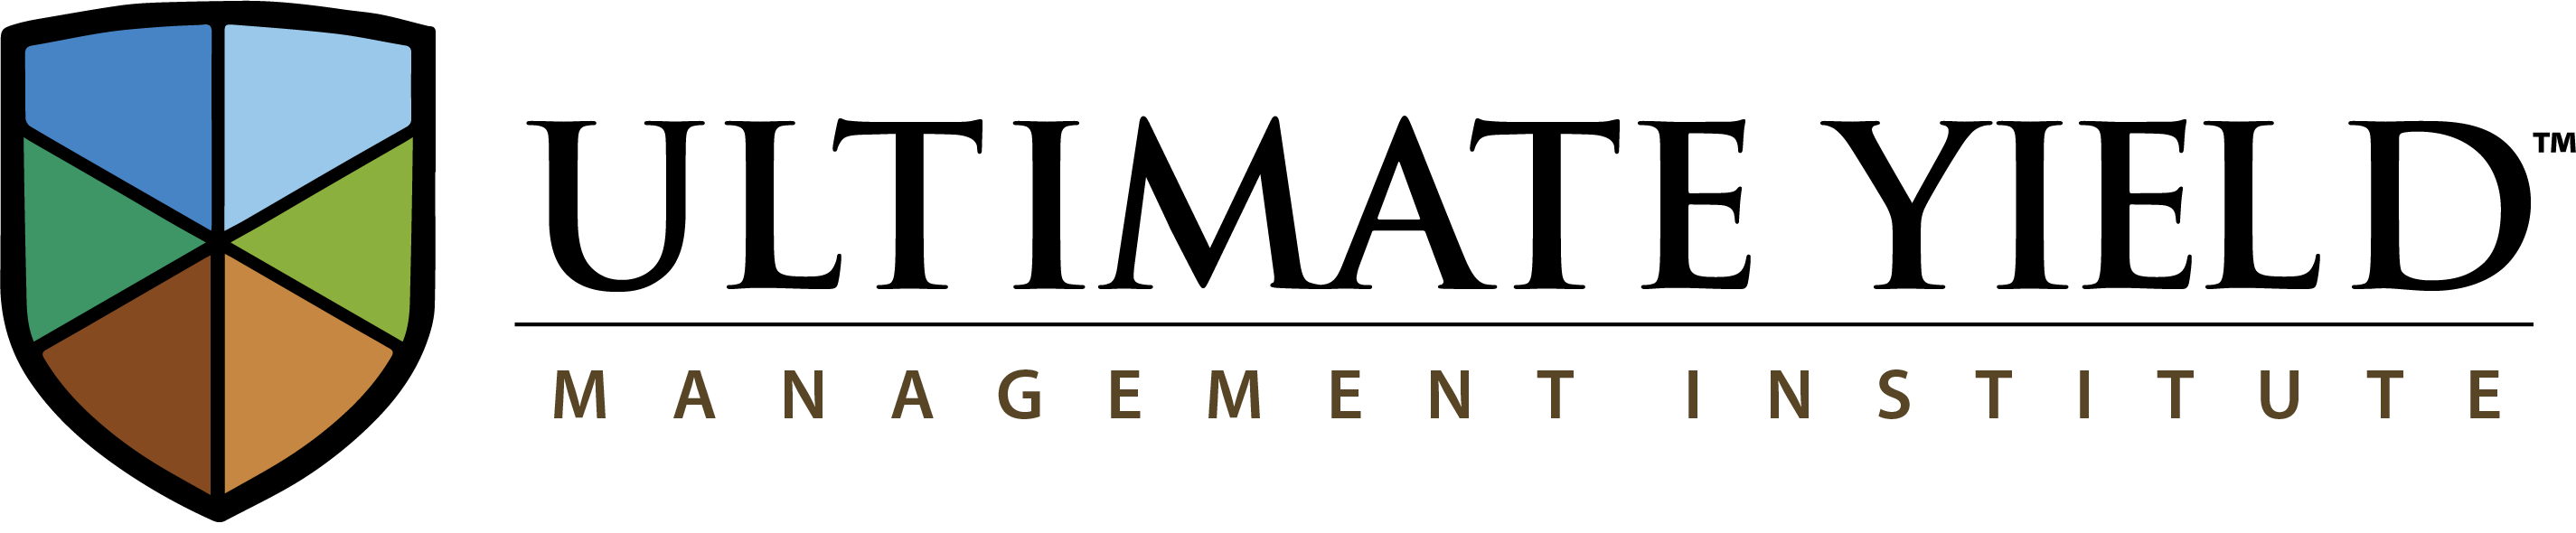 Ultimate Yield Management Institute